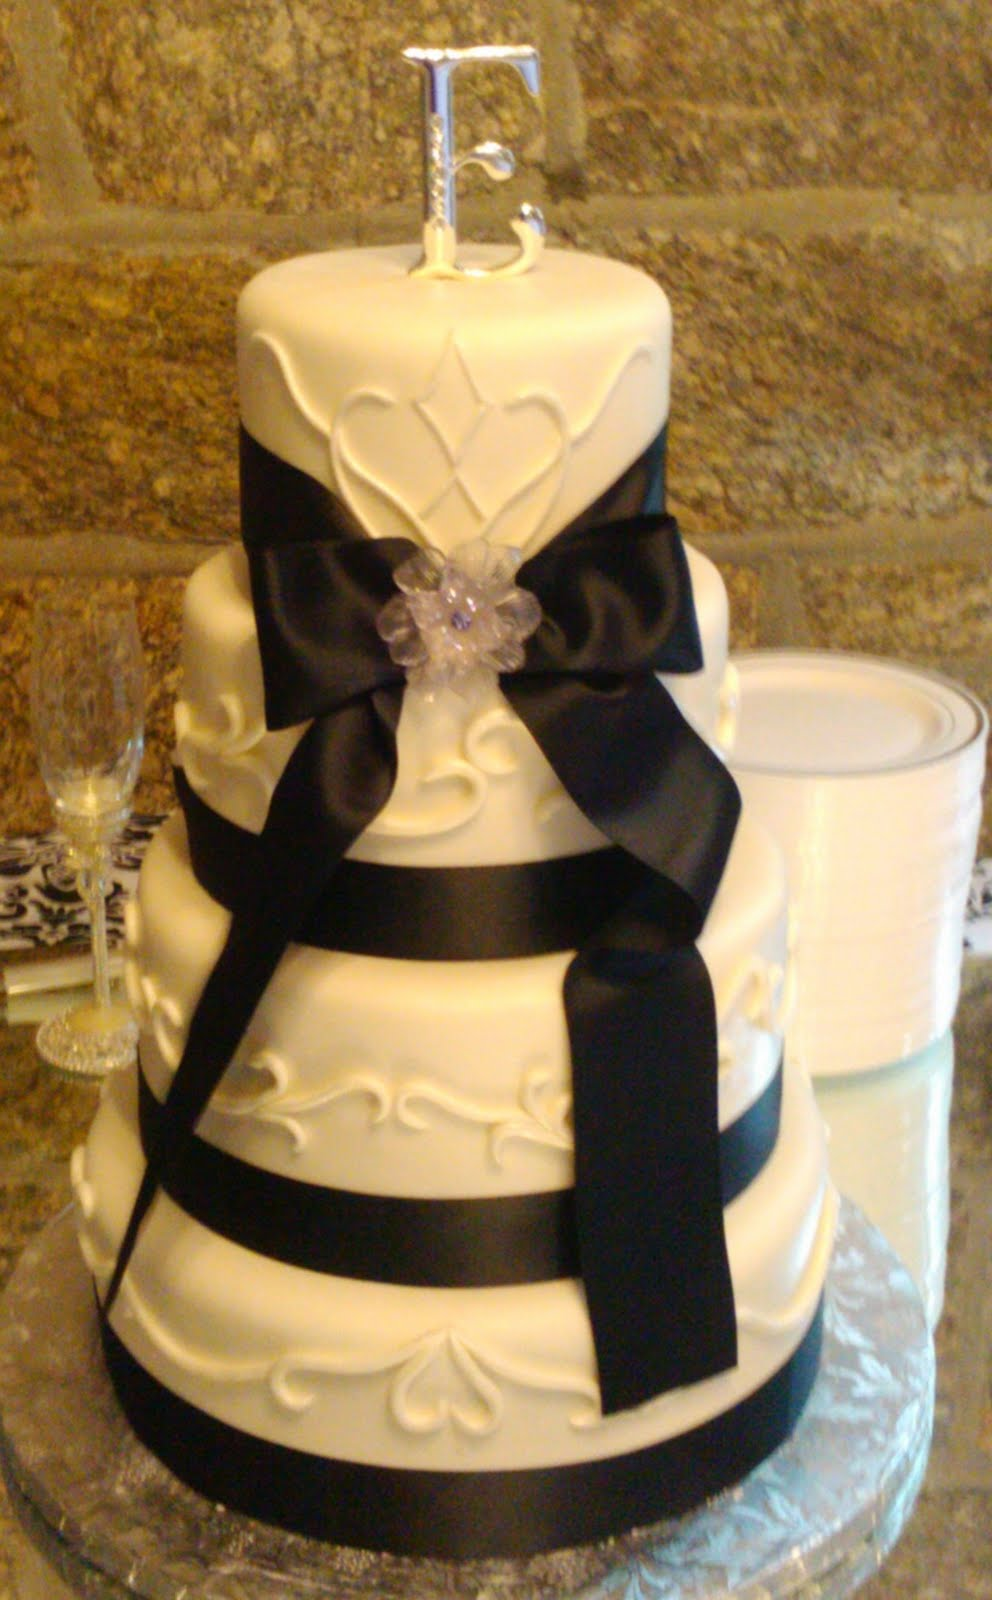 Art Eats Bakery custom fondant wedding and birthday cake designs ...